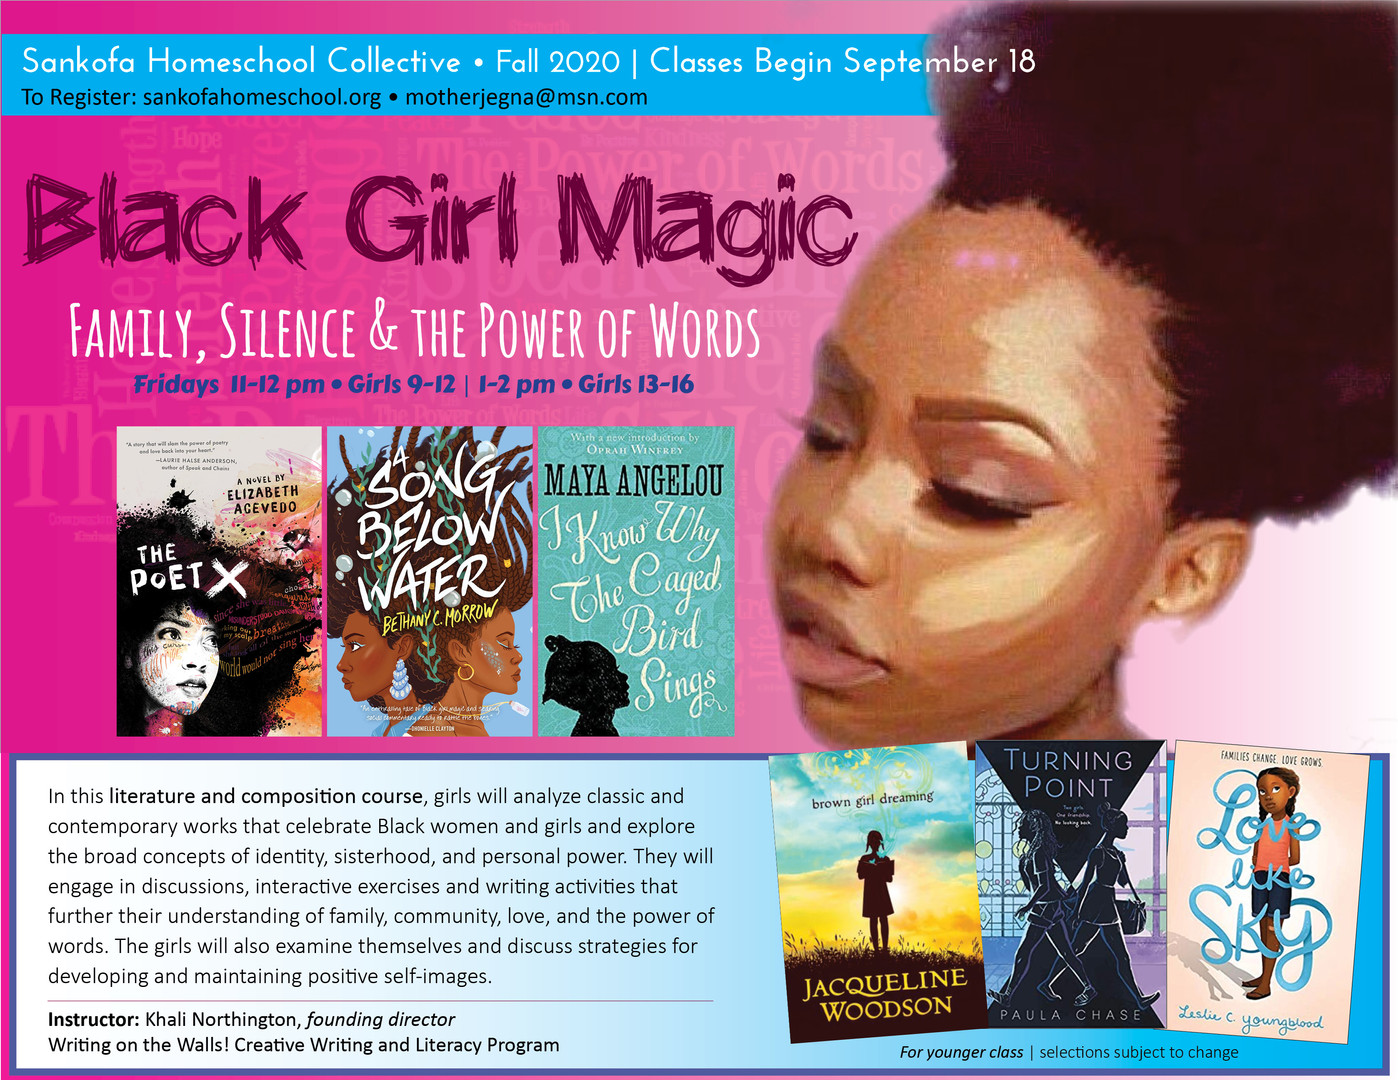 Black Girl Magic - Literature